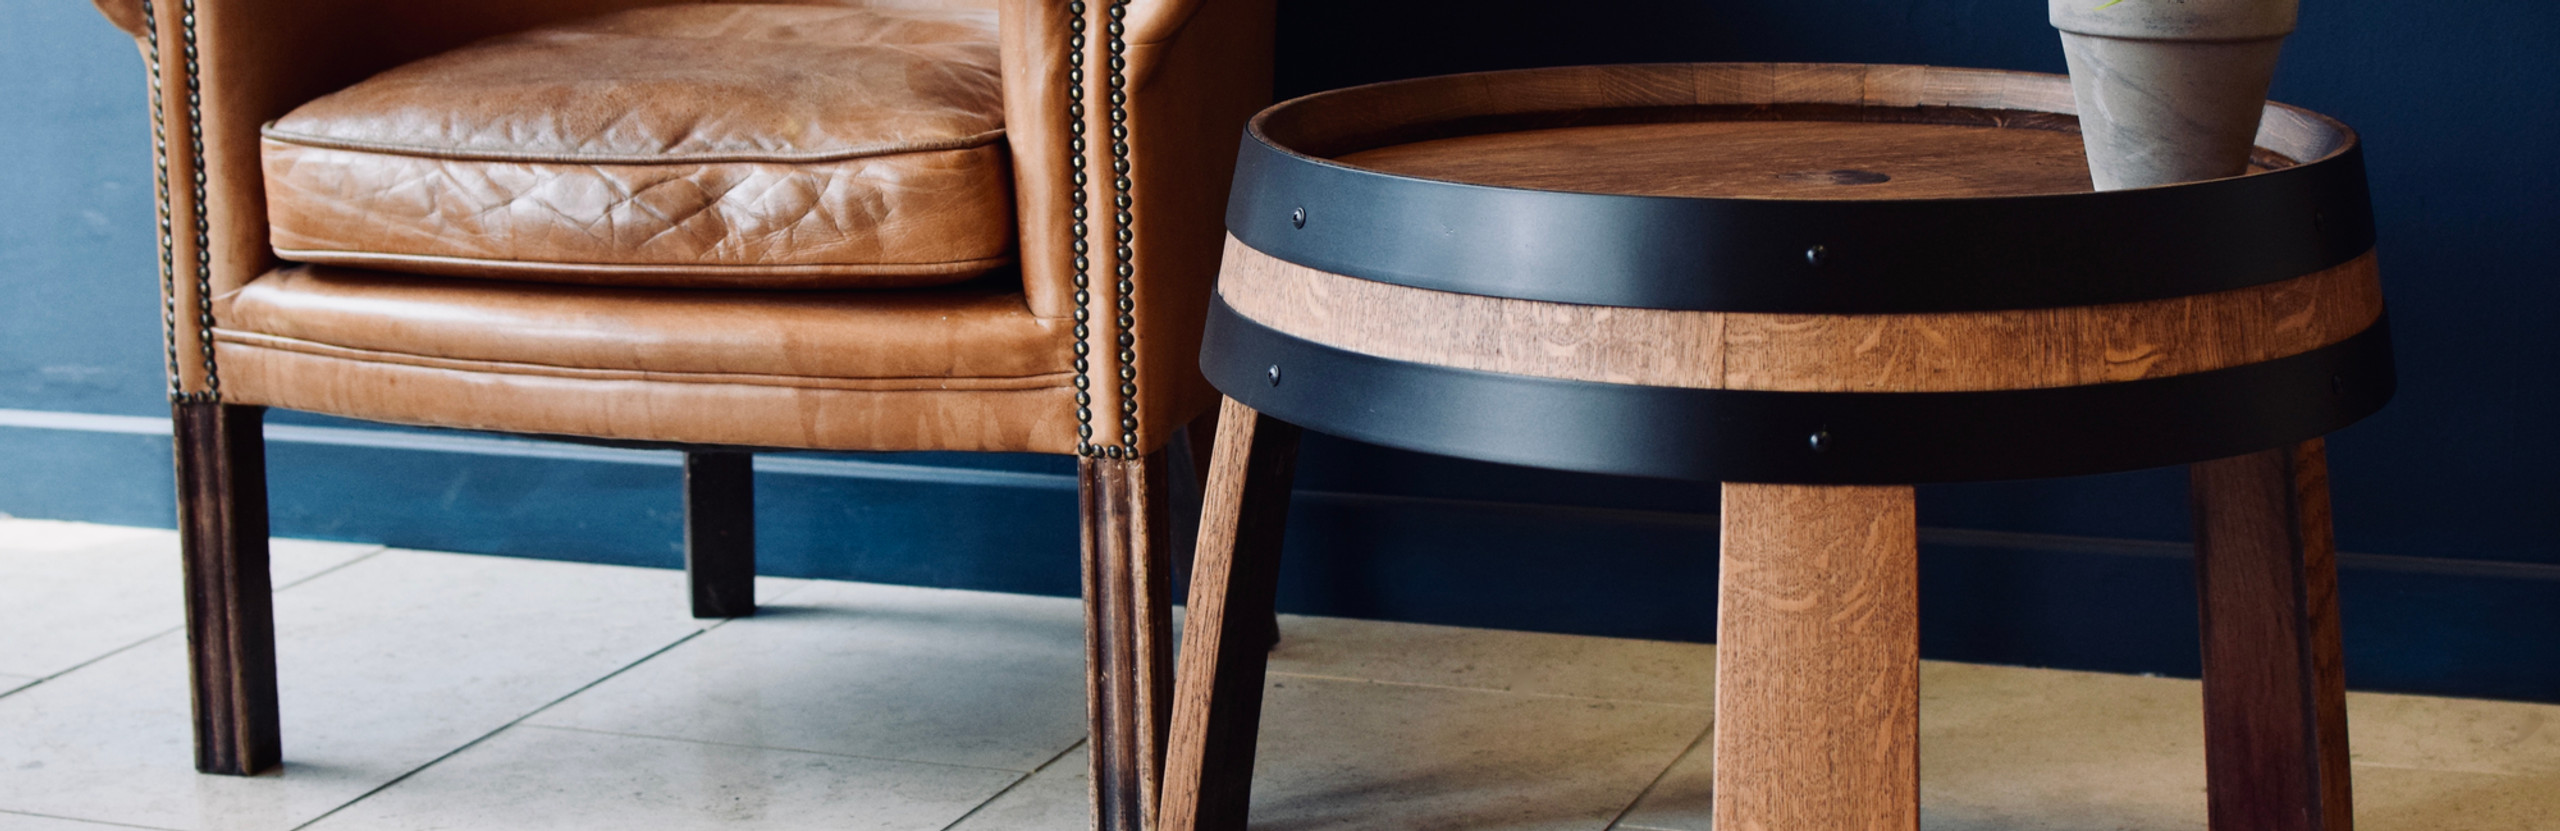 Bespoke Furniture For Wine Lovers The Wine Barrel Furniture Company